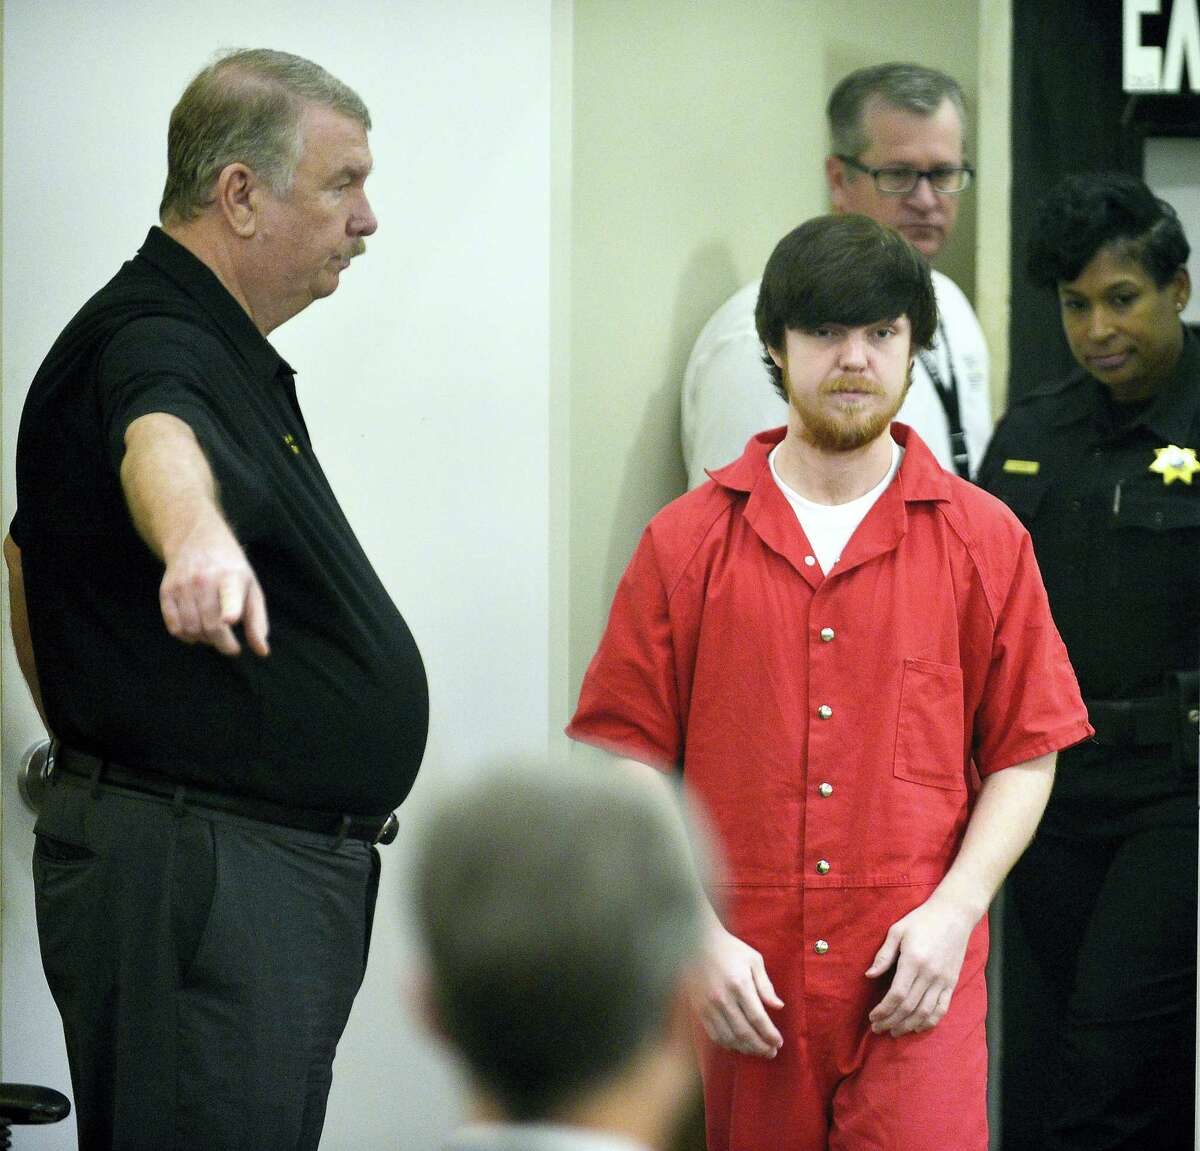 """Ethan Couch is brought into court for a hearing at Tim Curry Justice Center in Fort Worth, Texas, Wednesday, April 13, 2016. The judge ordered Couch, the Texas teenager who used an """"affluenza"""" defense in a fatal drunken-driving wreck, to serve nearly two years in jail."""